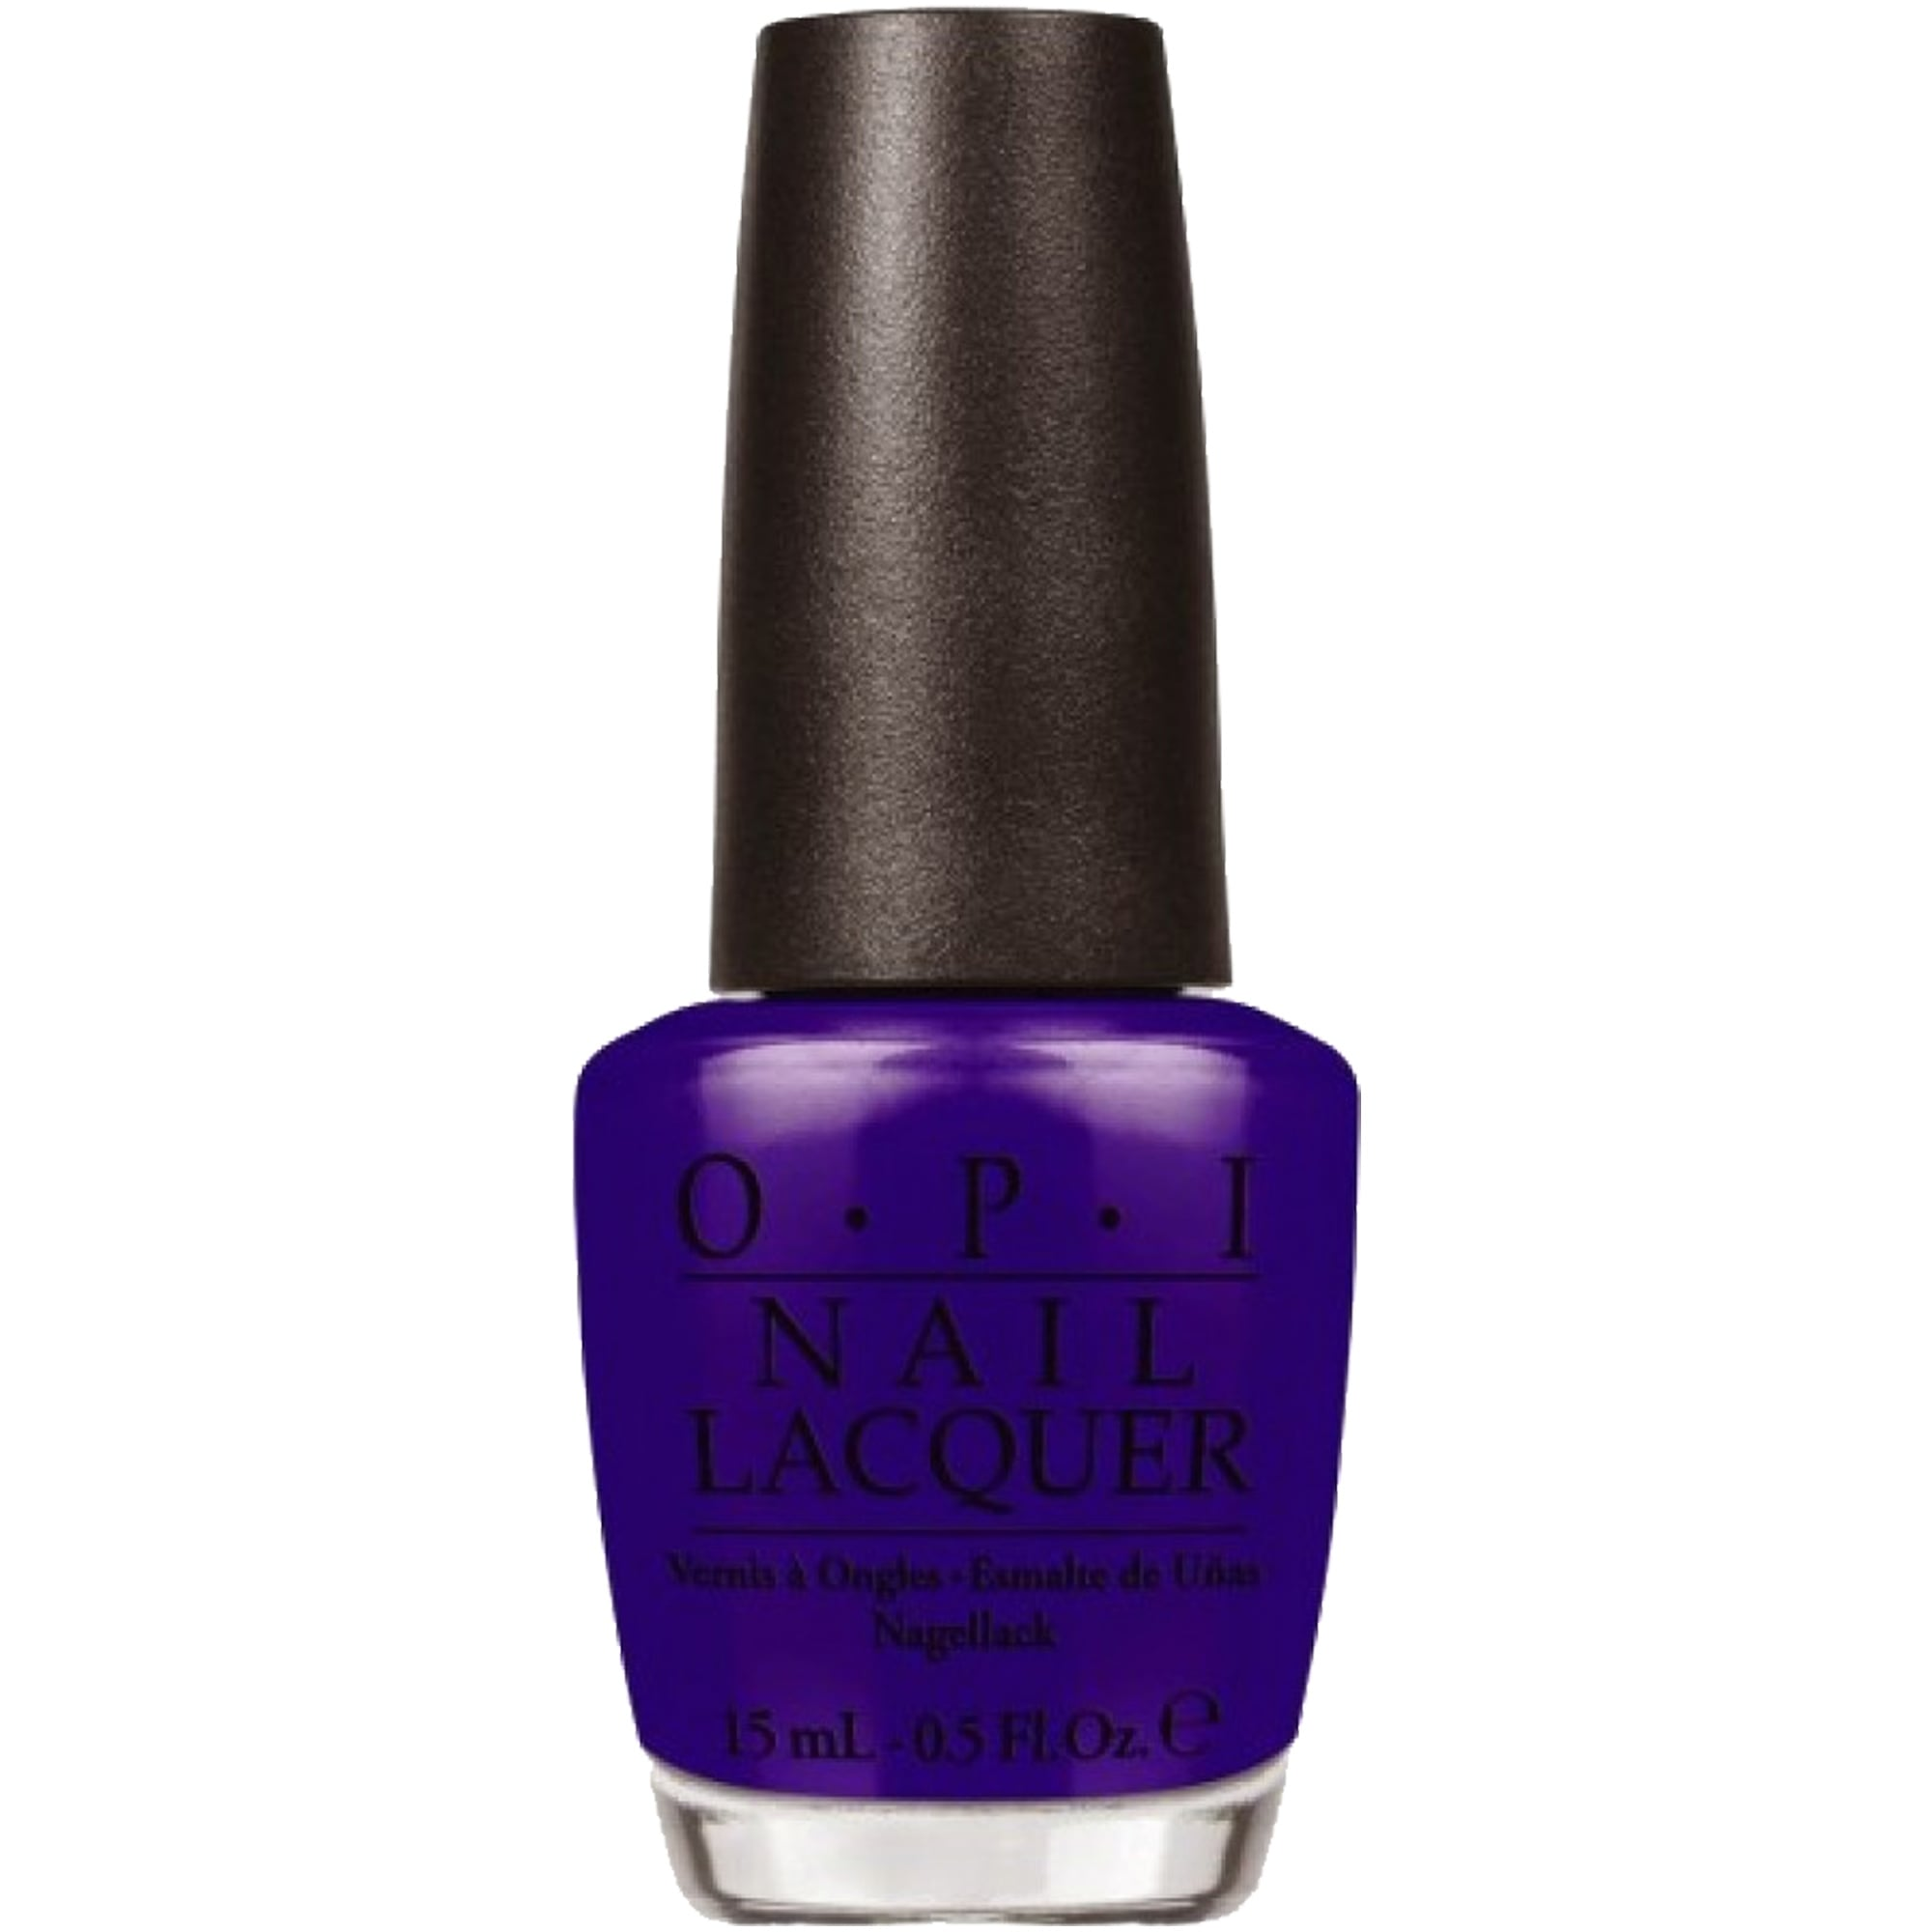 opi nordic nail polish do you have this color in stock-holm (nl n47)